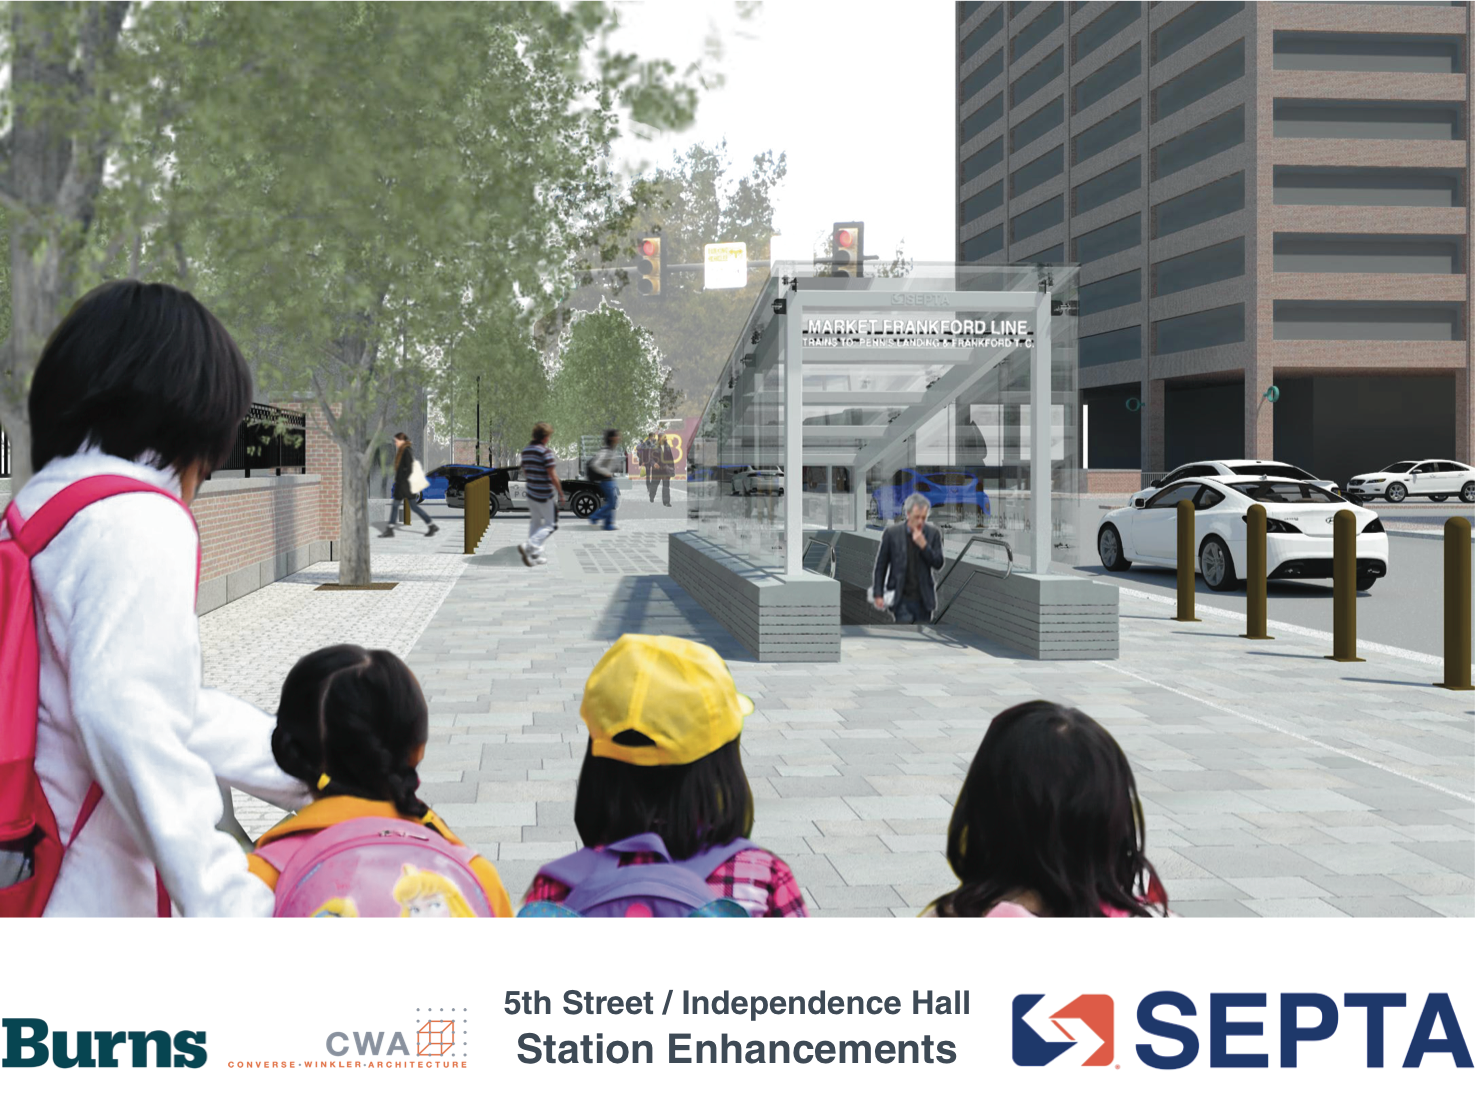 5th Street / Independence Hall: Rendering of new SW entrance | courtesy of SEPTA